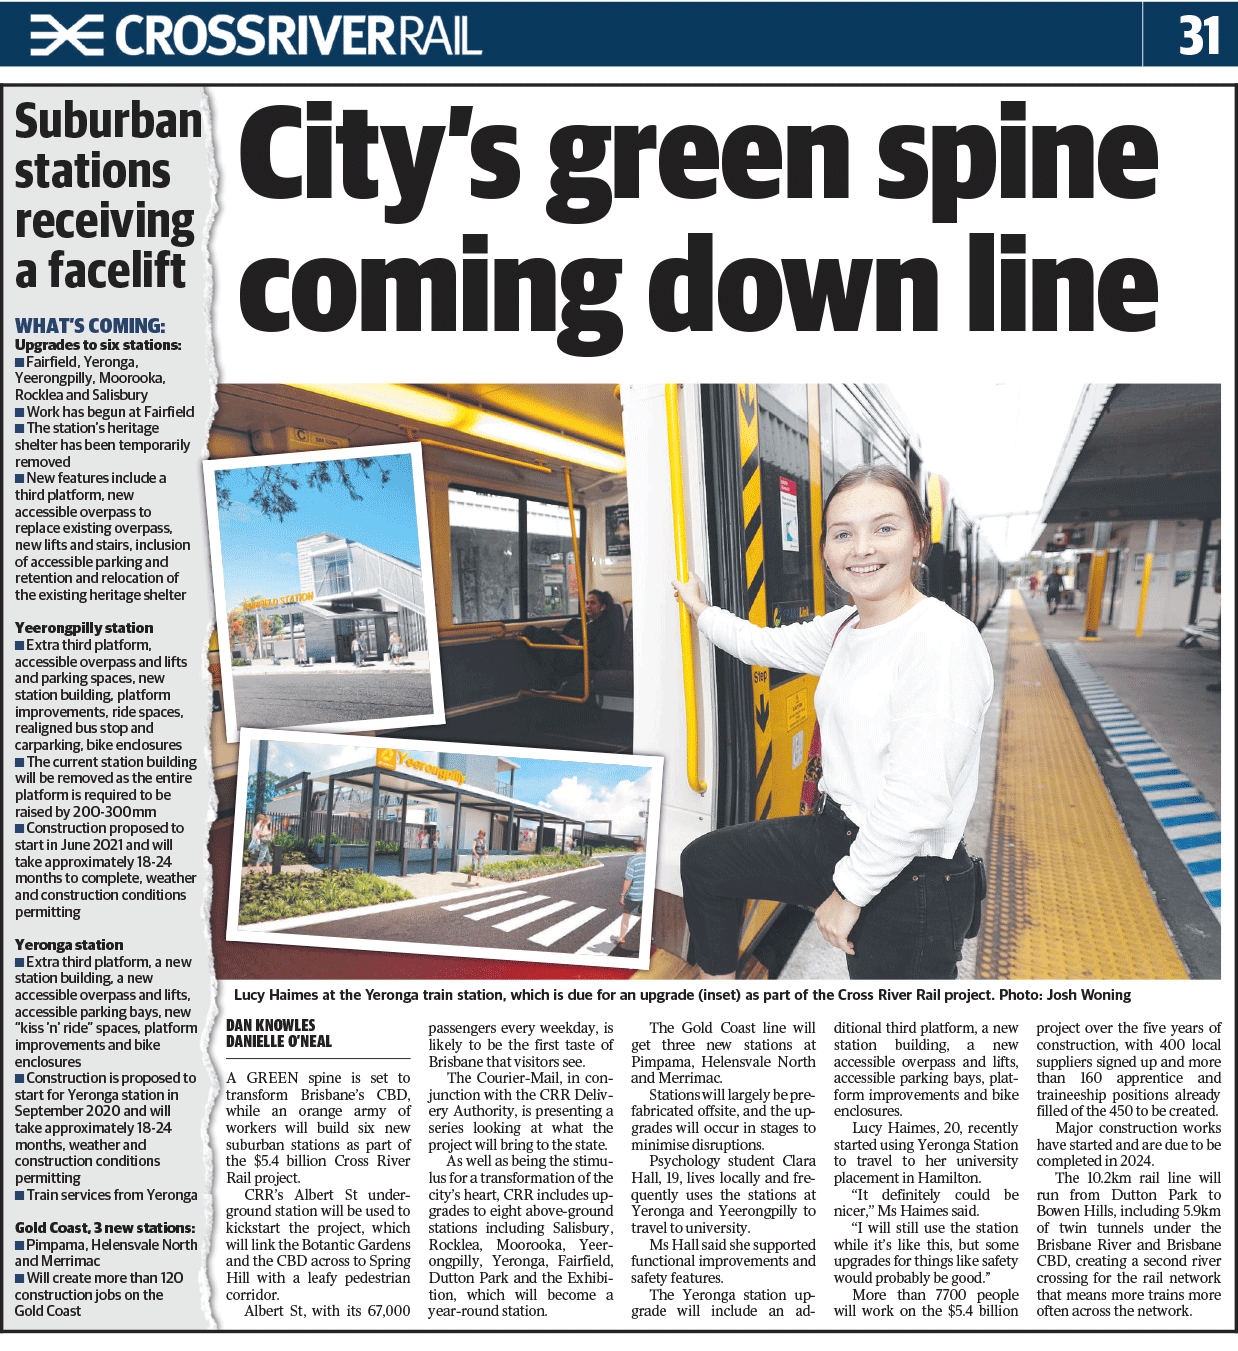 Newspaper article with title city's green spine coming down line